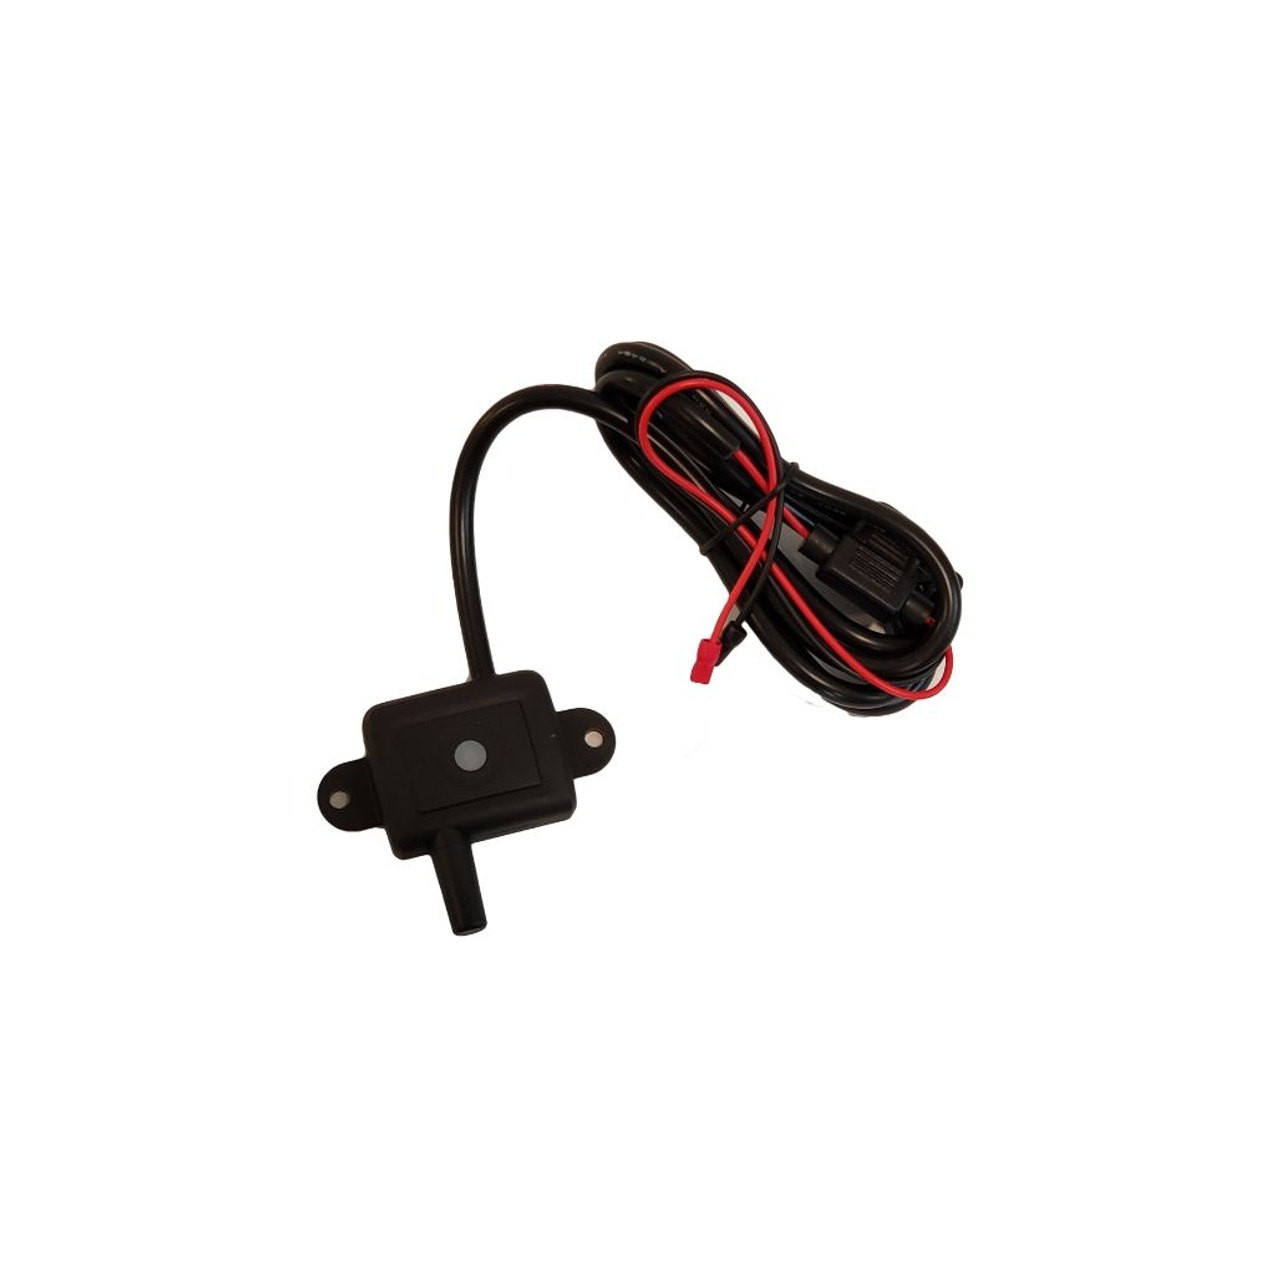 TST 507 TPMS with FLOW THRU Sensors (12) and Repeater